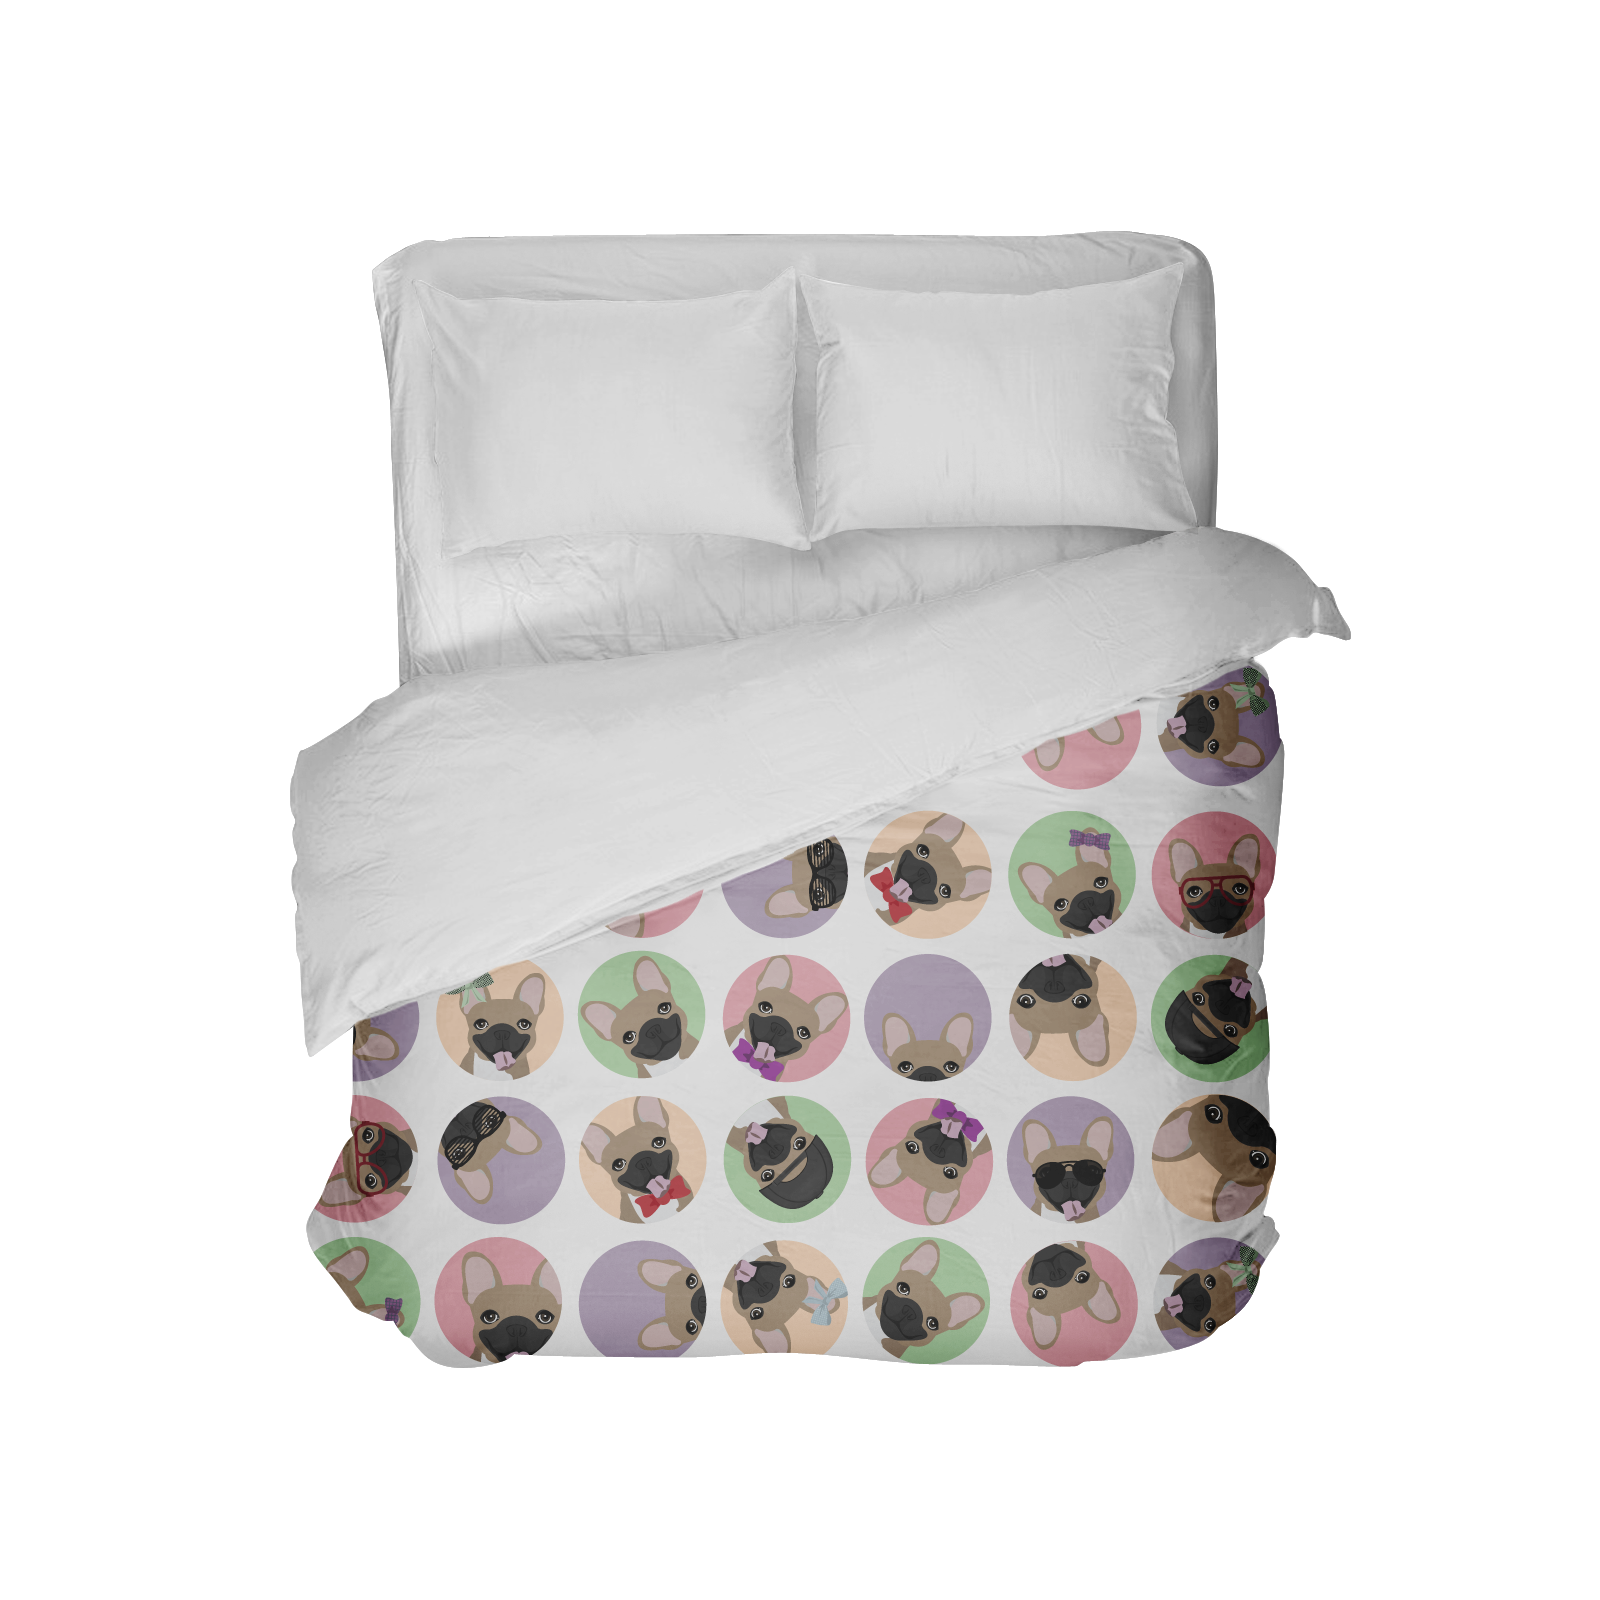 Now available Bedding W/ Fawn F.... All our products are handmade & handcrafted with the highest quality in mind. http://thefrenchiestore.com/products/bedding-w-fawn-frenchie?utm_campaign=social_autopilot&utm_source=pin&utm_medium=pin